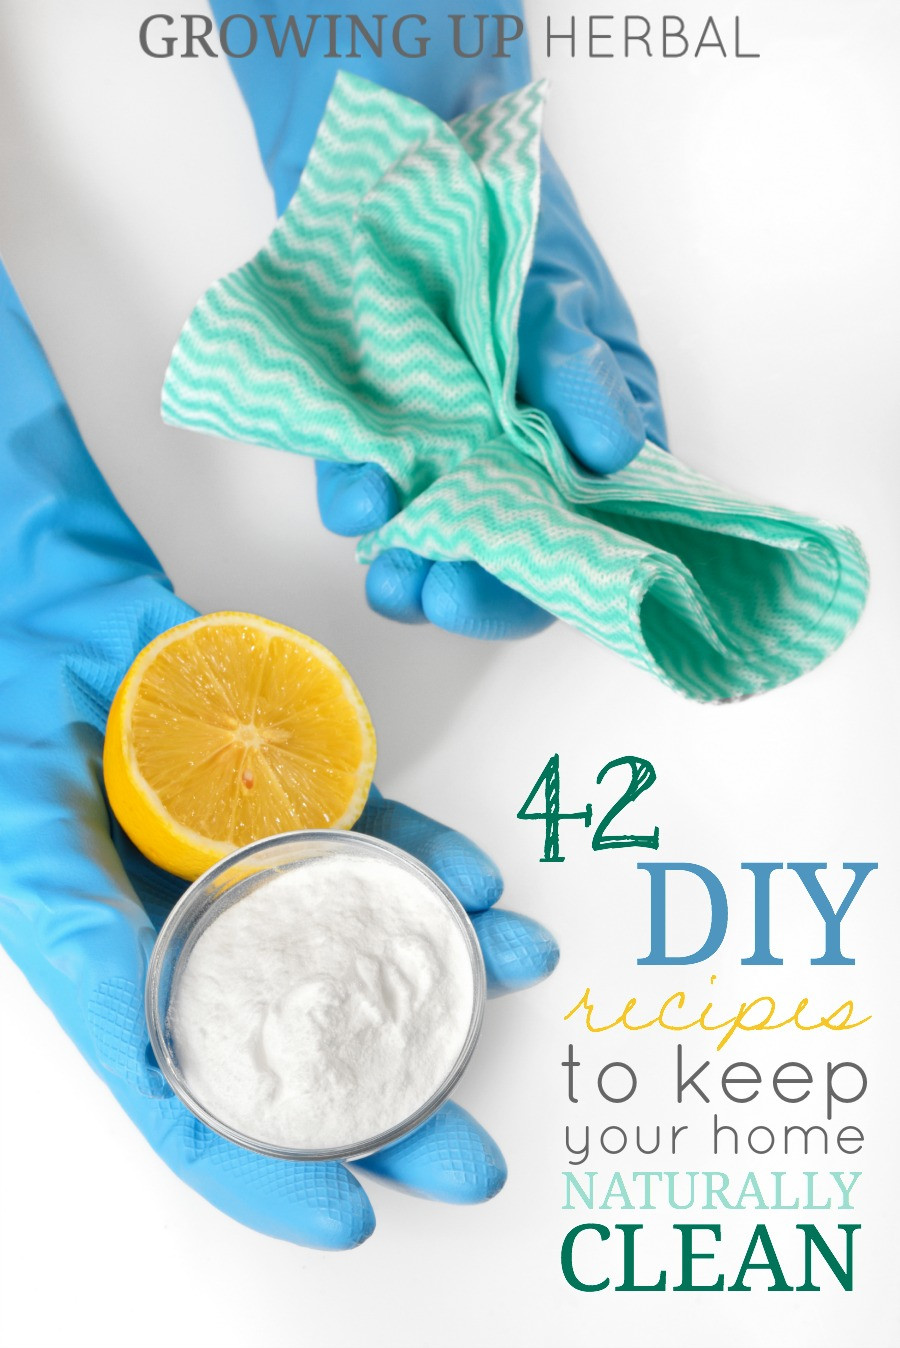 Best ideas about DIY House Cleaning . Save or Pin 42 DIY Recipes To Keep Your Home Naturally Clean Now.